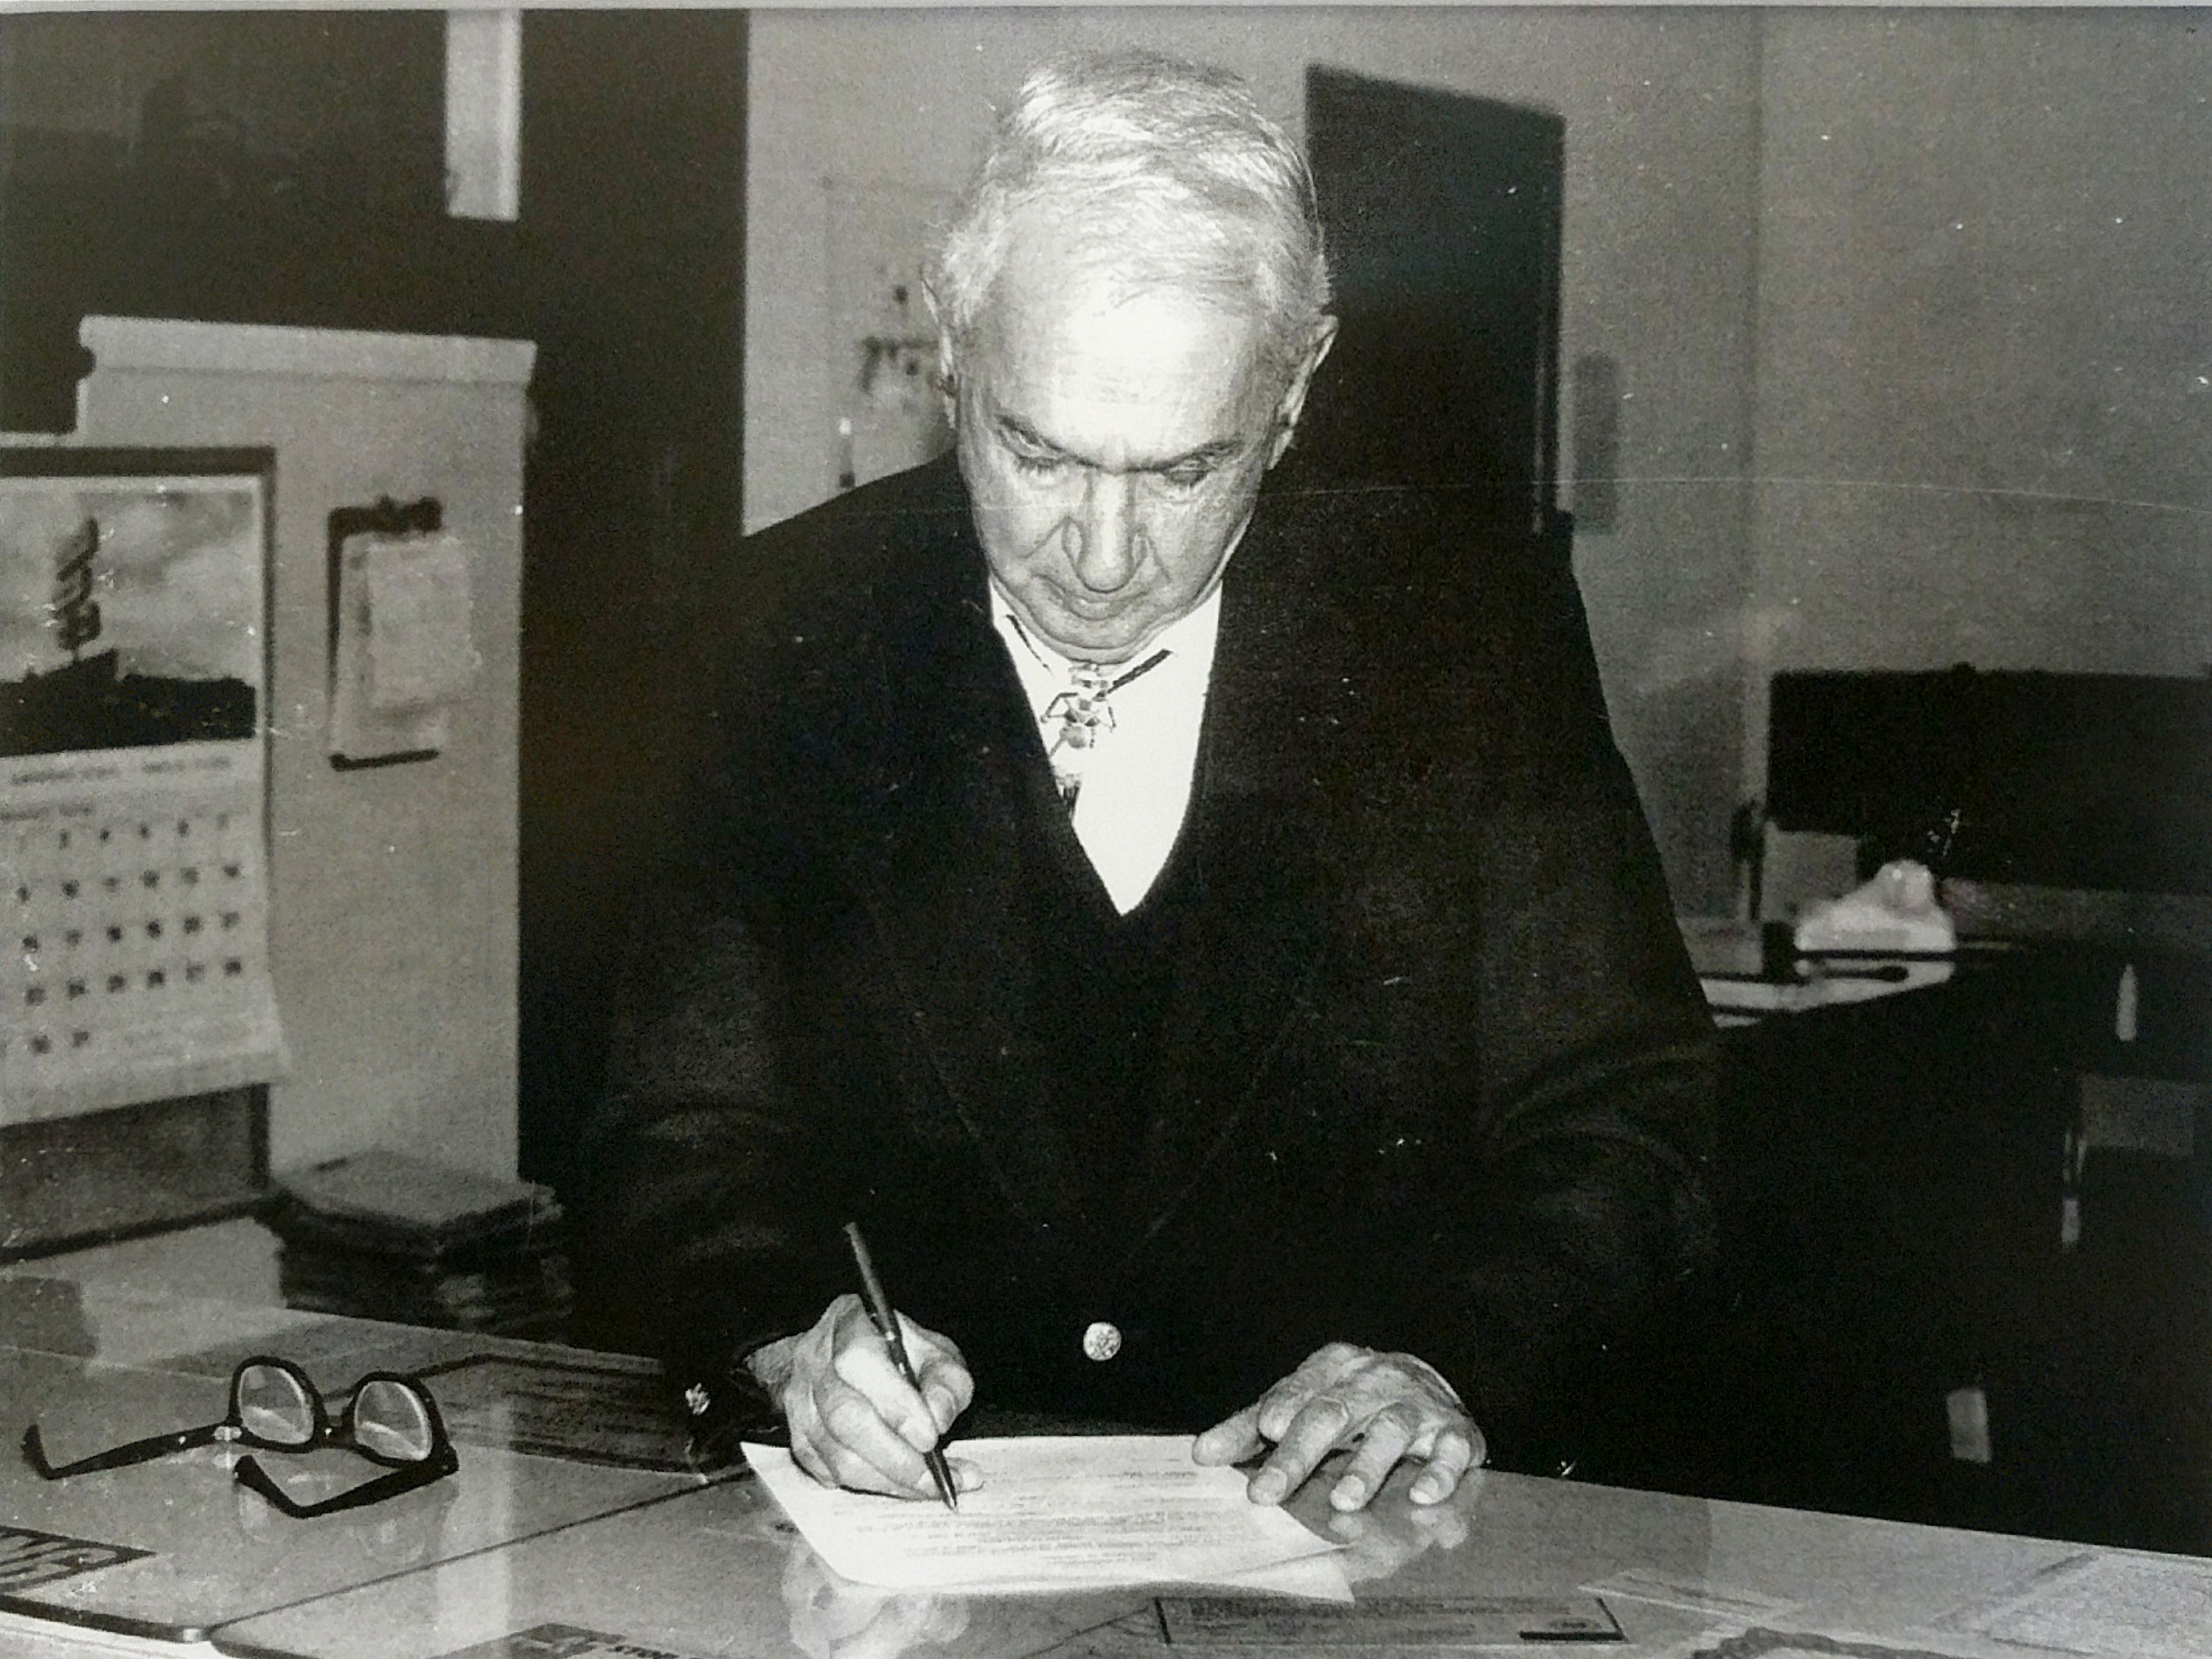 Mayor Salvador Milan 1972